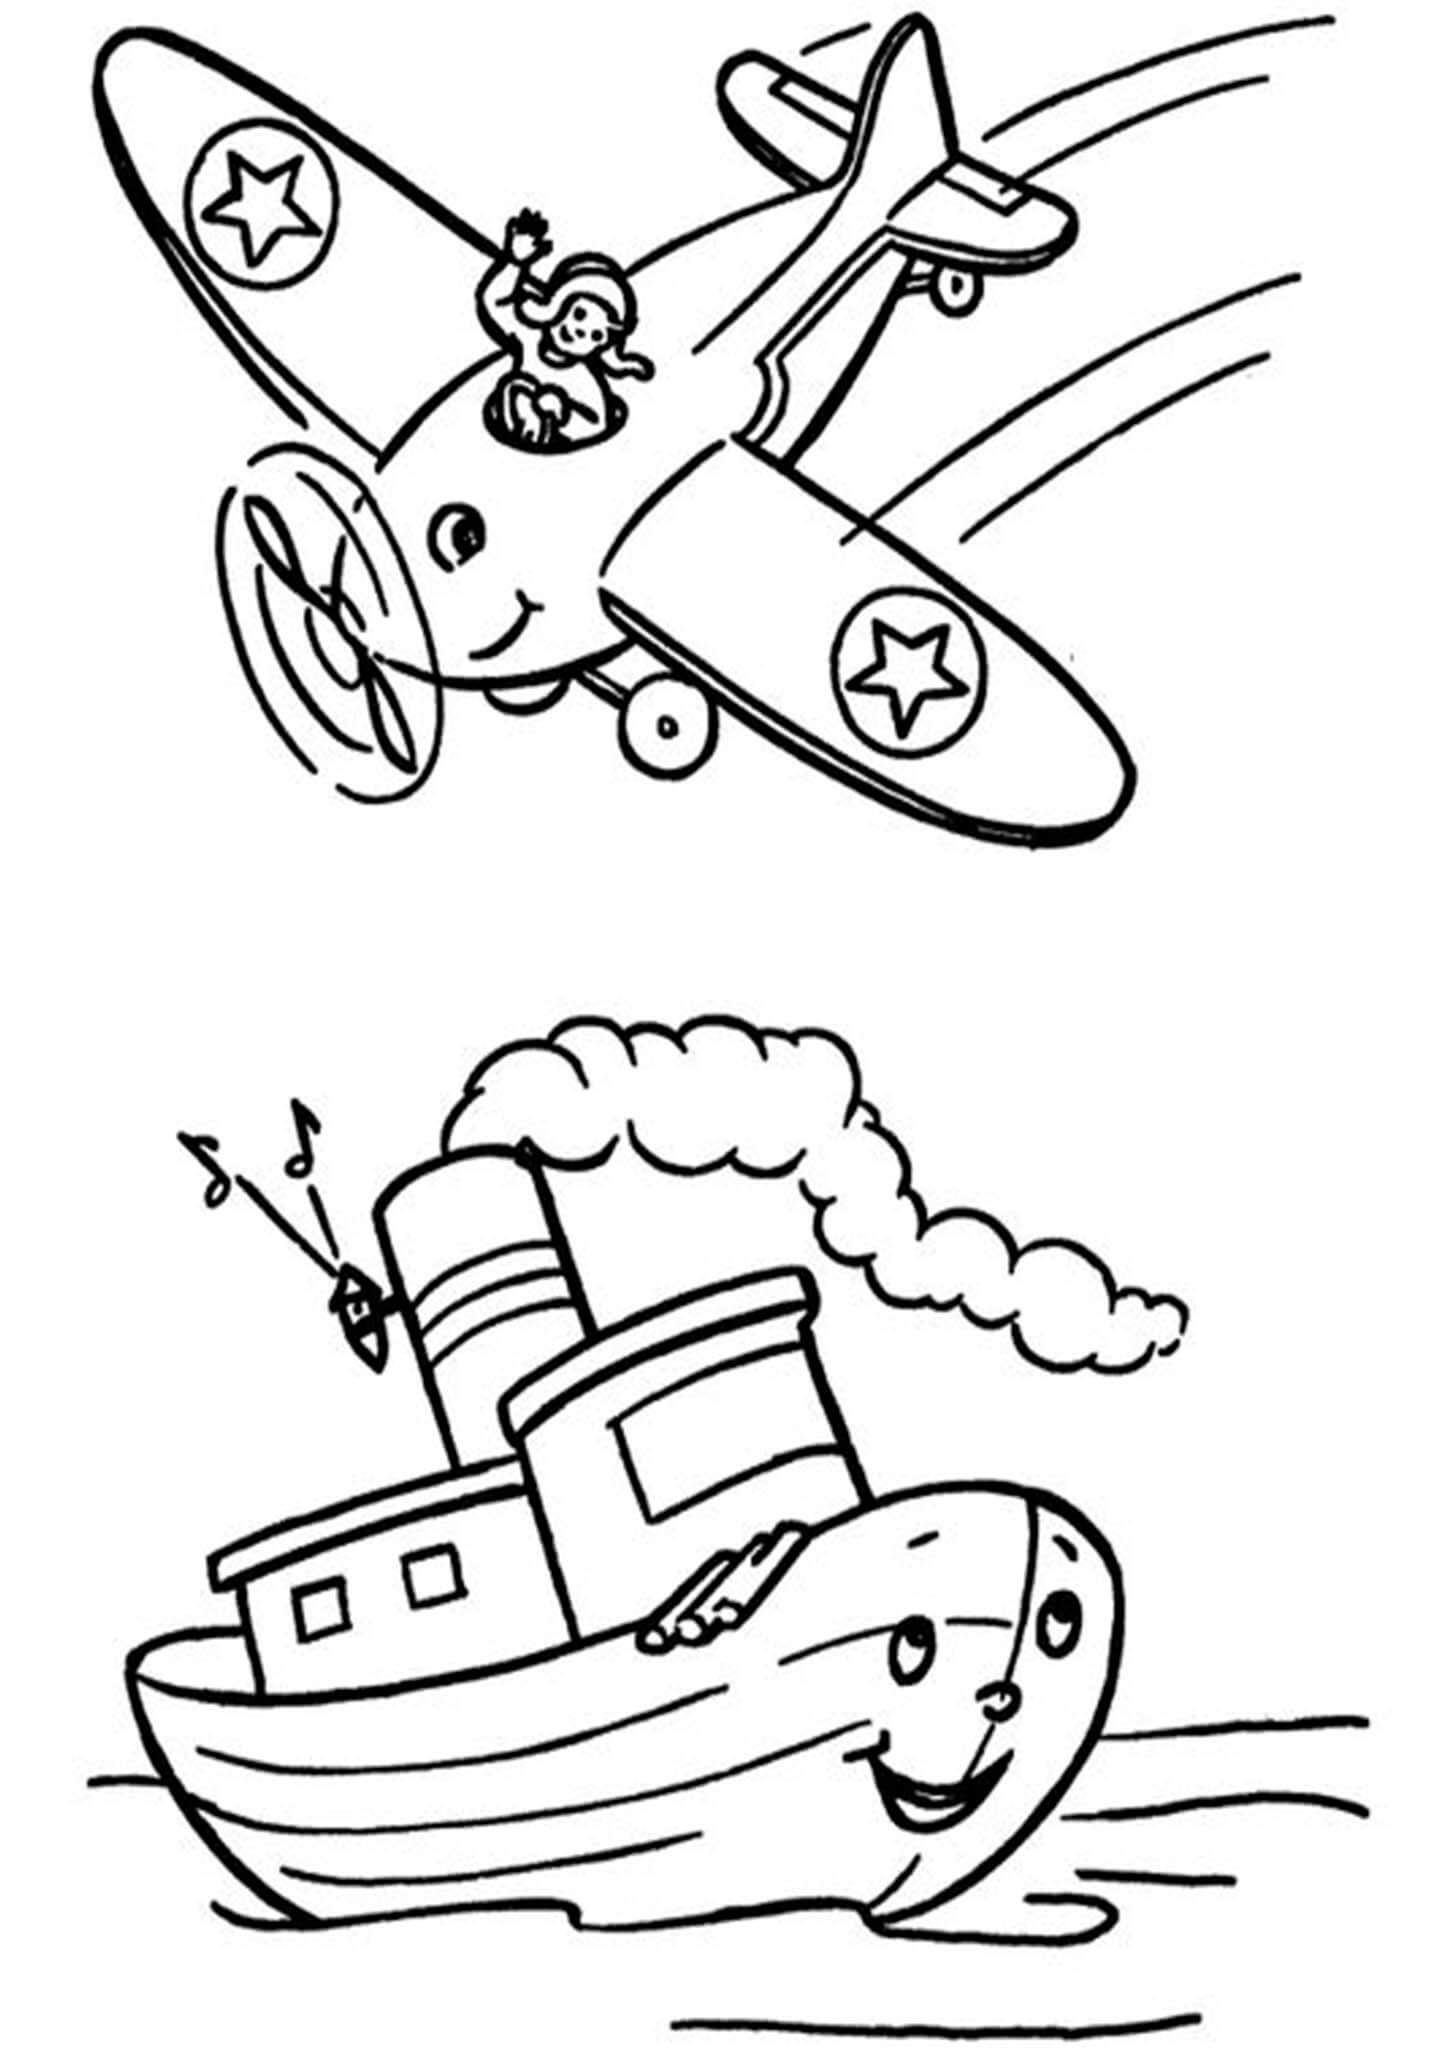 Free Easy To Print Airplane Coloring Pages Airplane Coloring Pages Coloring Pages For Boys Disney Coloring Pages